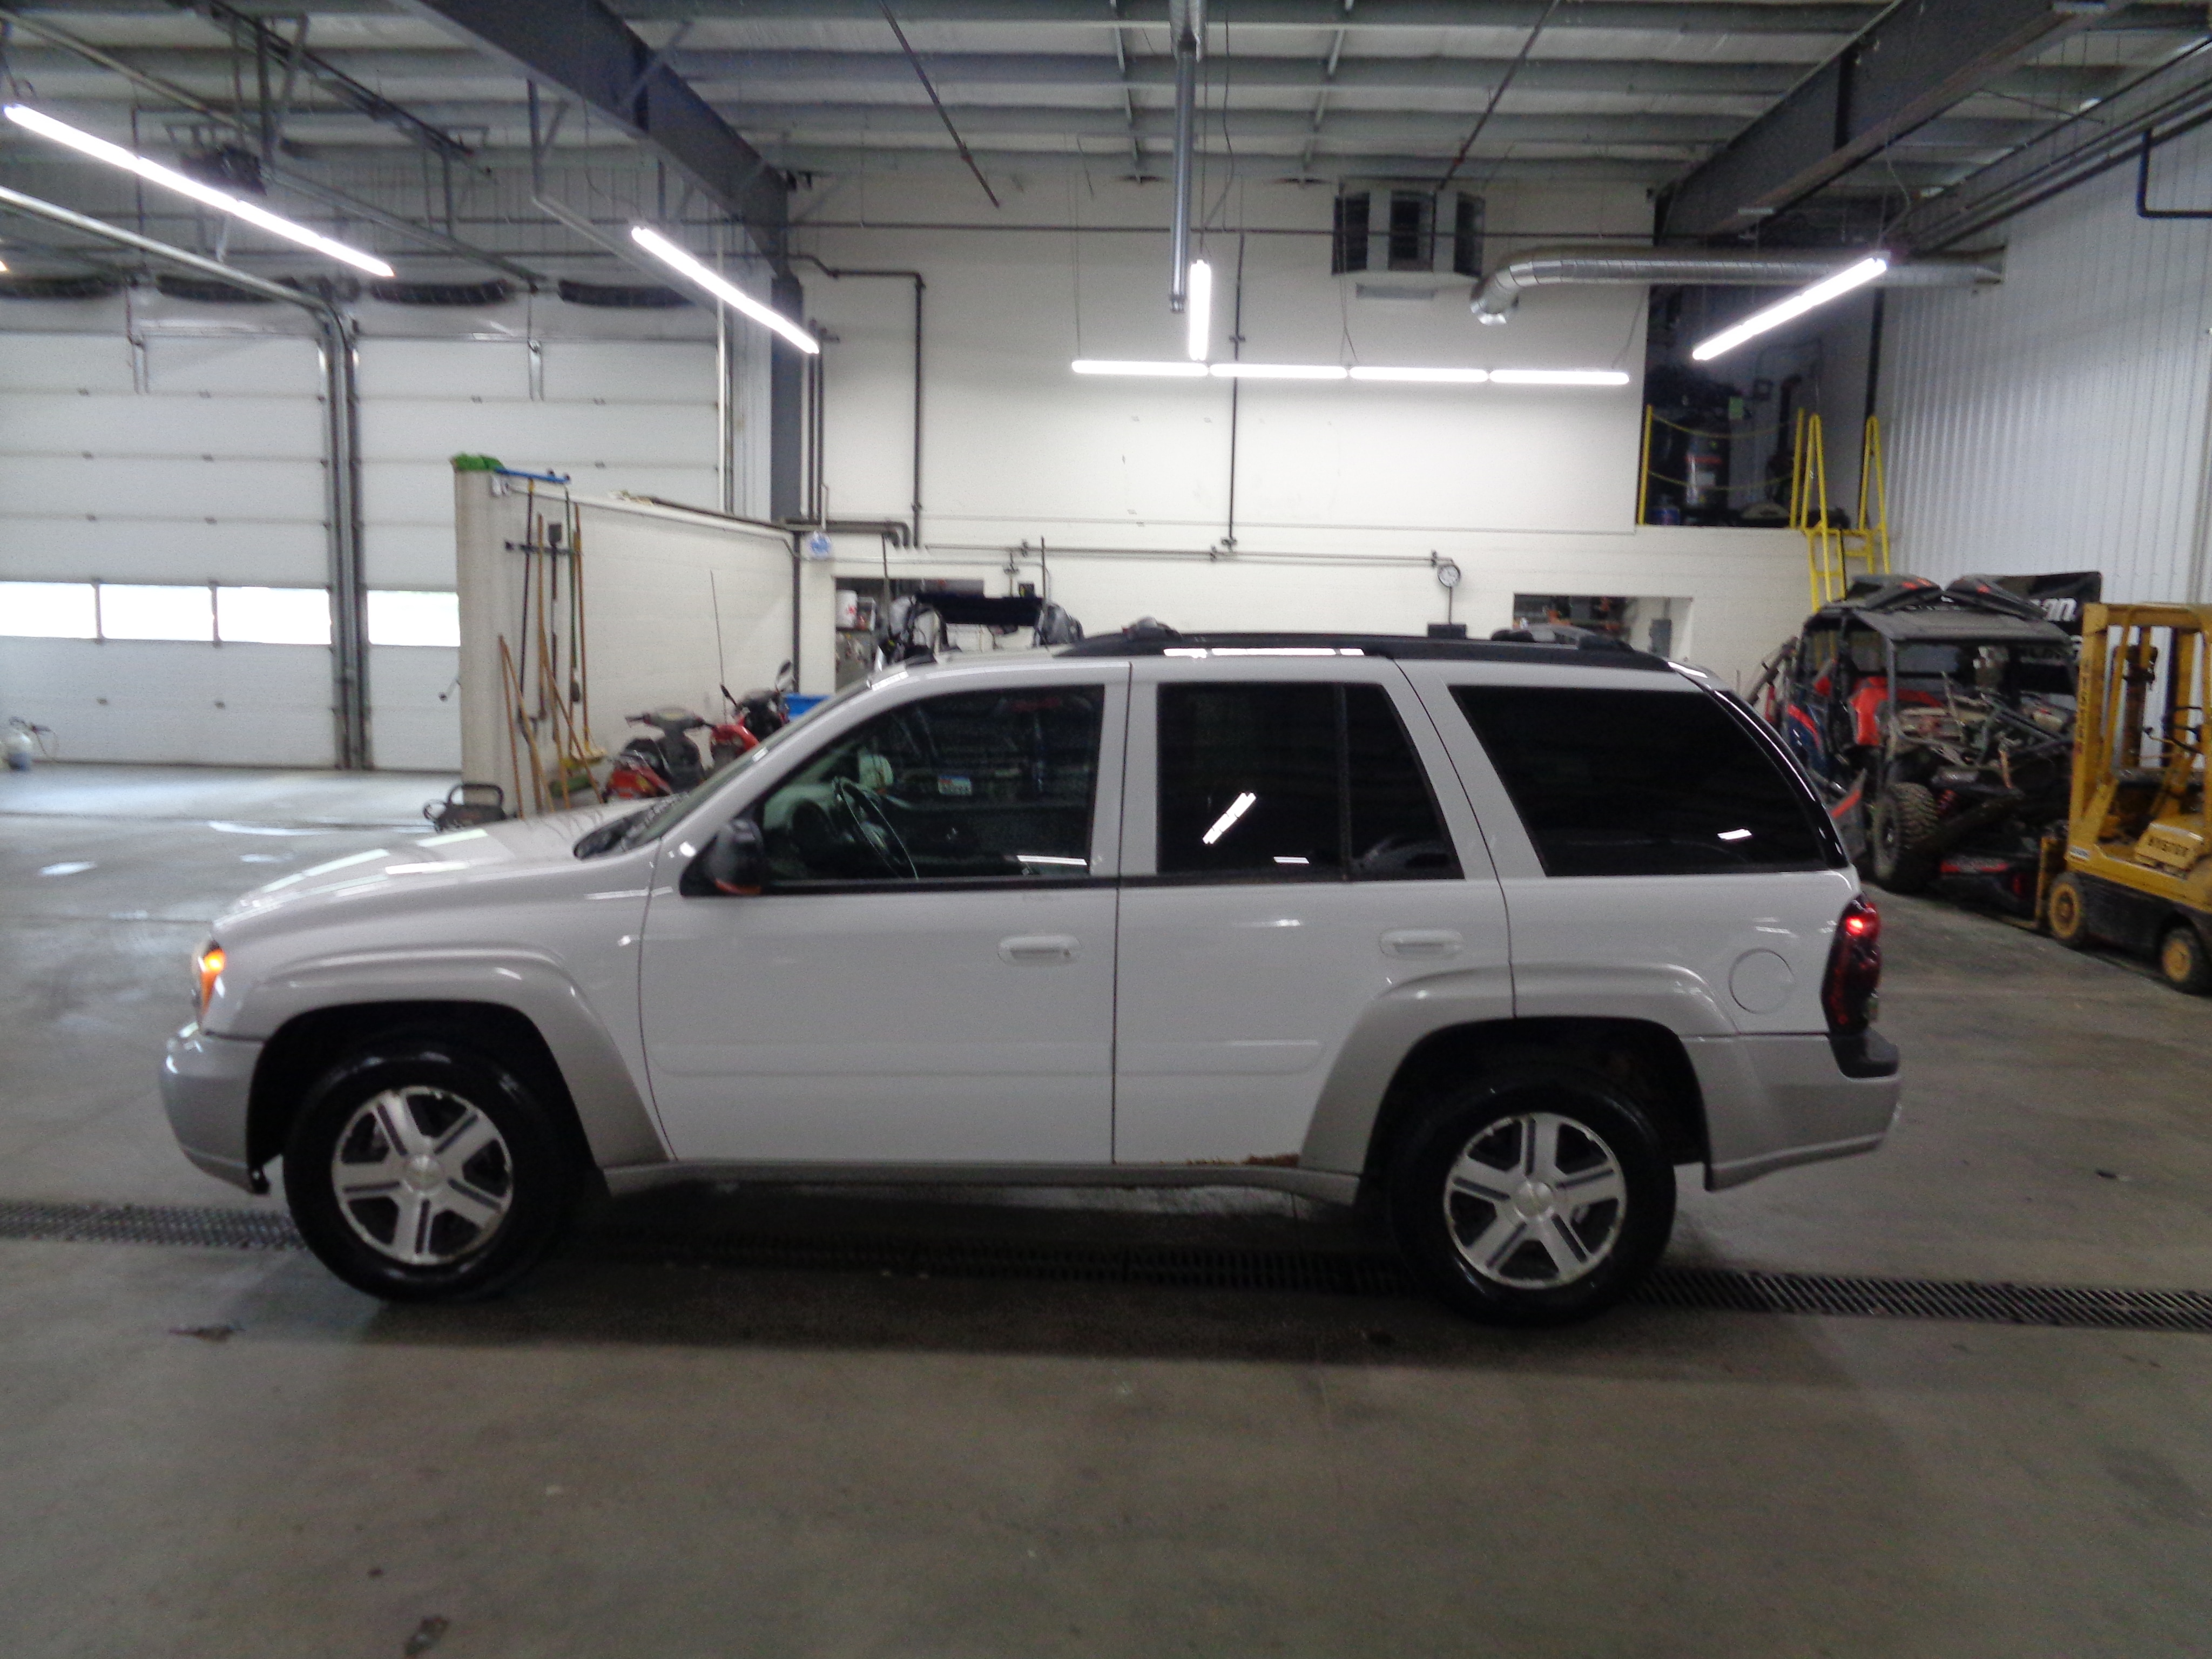 Used 2005 Chevrolet TrailBlazer LS with VIN 1GNDT13S952142278 for sale in Luverne, Minnesota